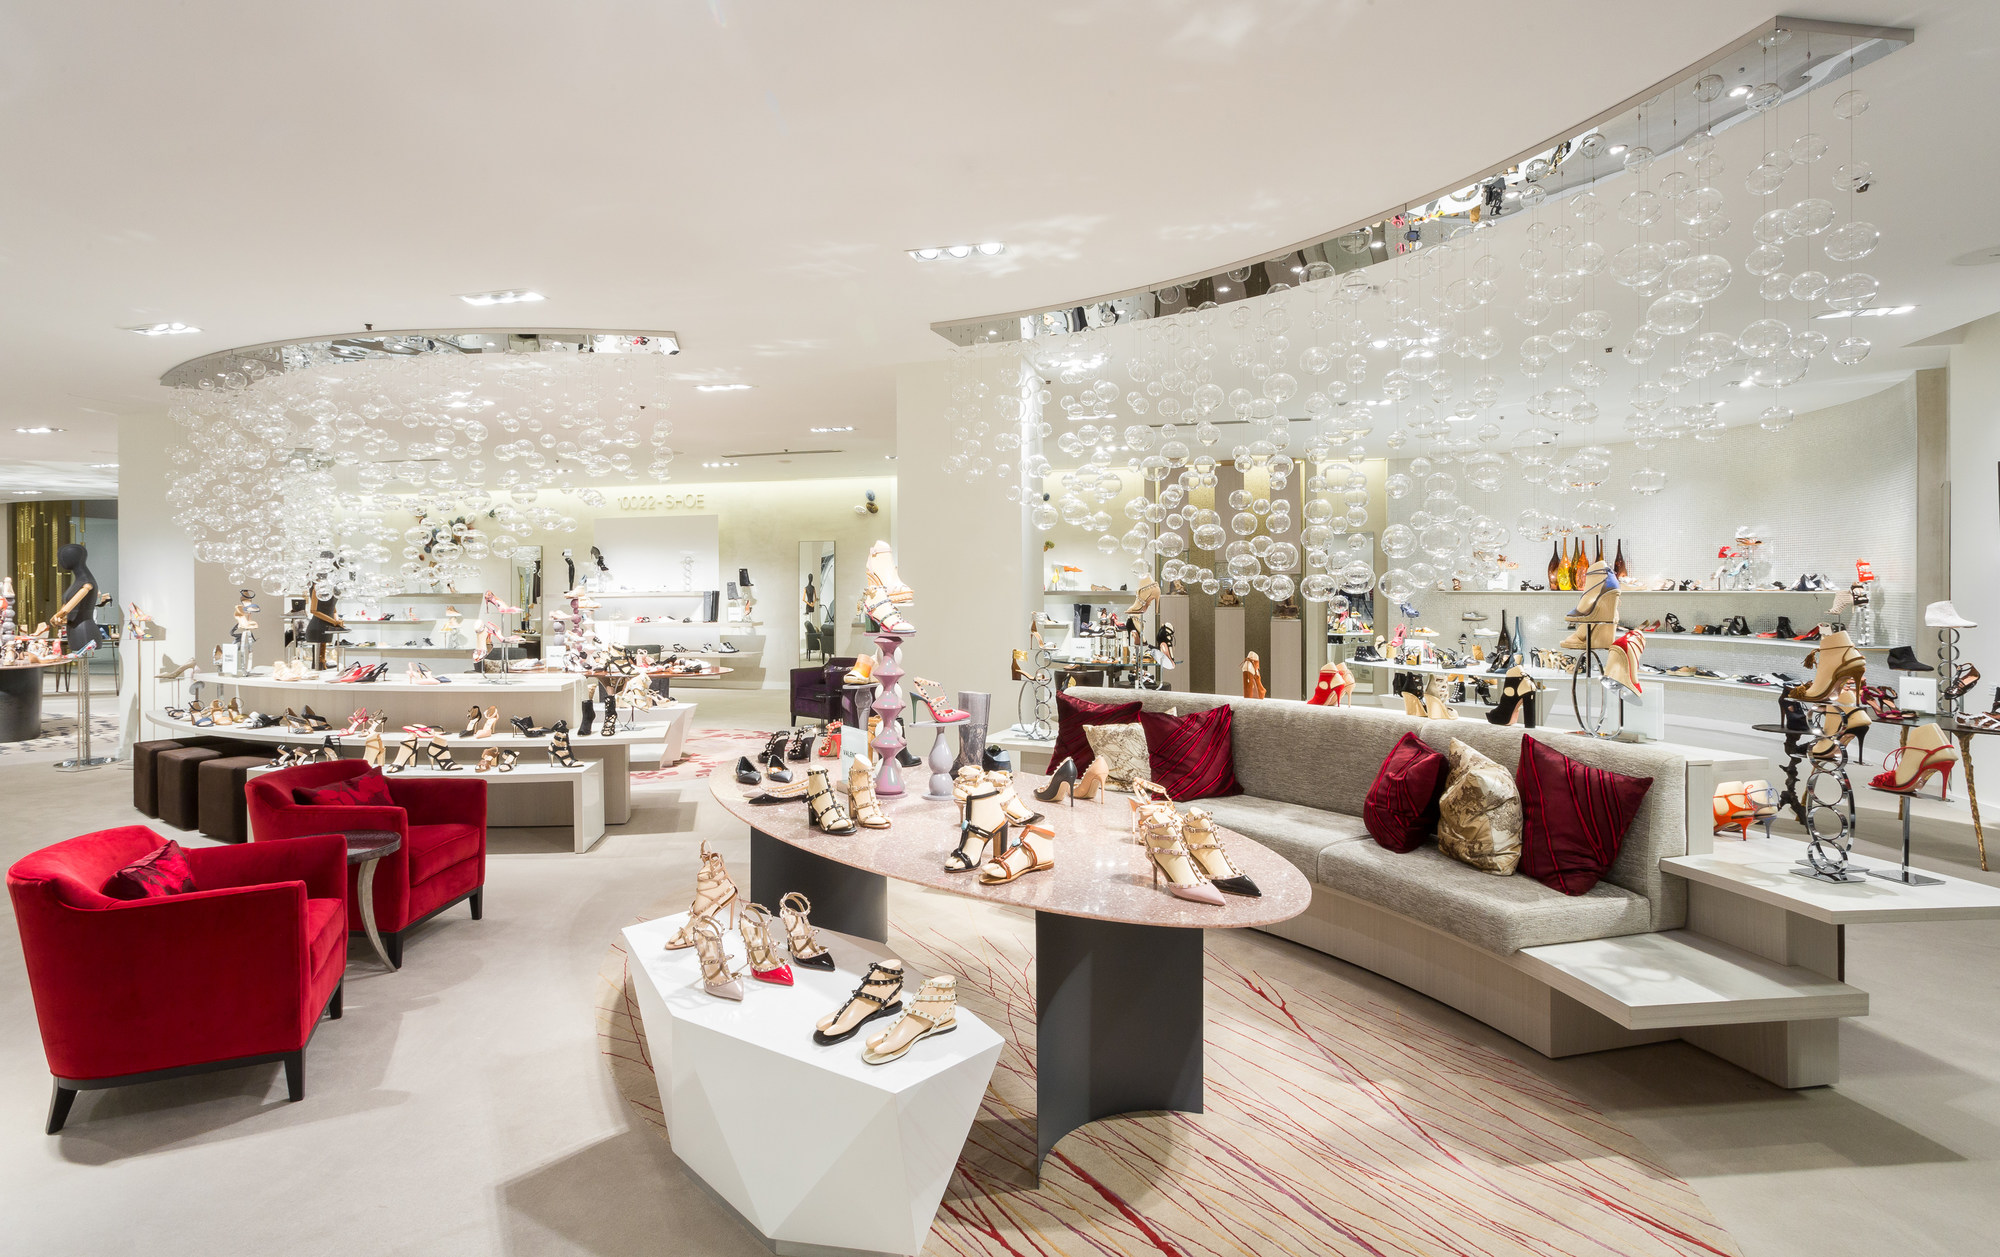 Saks Fifth Avenue opens at Sherway Gardens Feb. 25